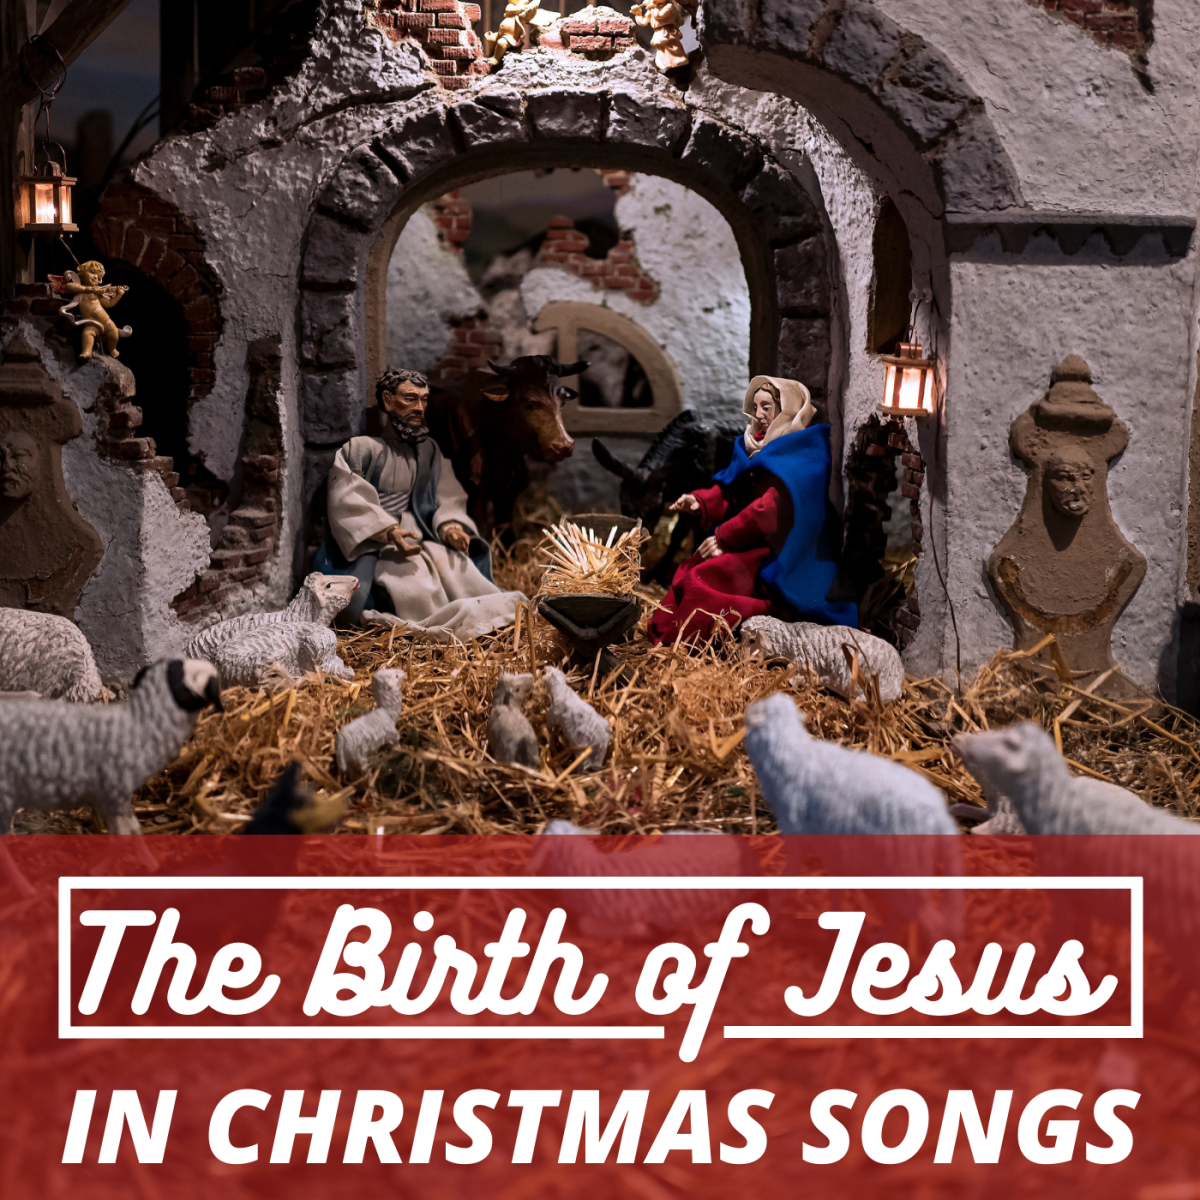 The 10 Best Christmas Songs About the Birth of Jesus